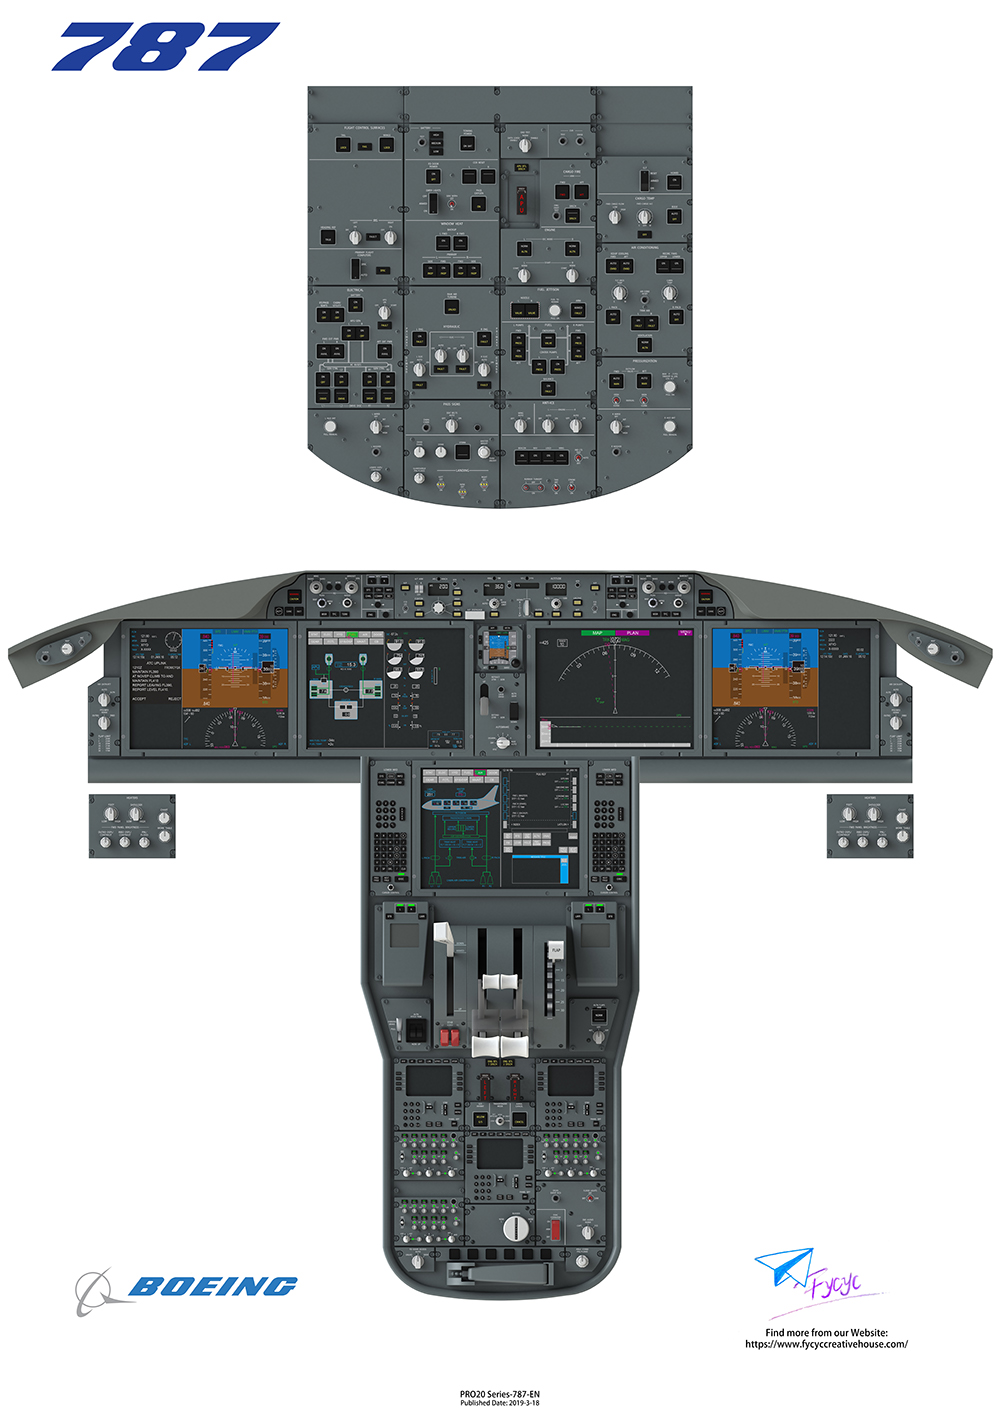 FYCYC - 787-COCKPIT POSTER